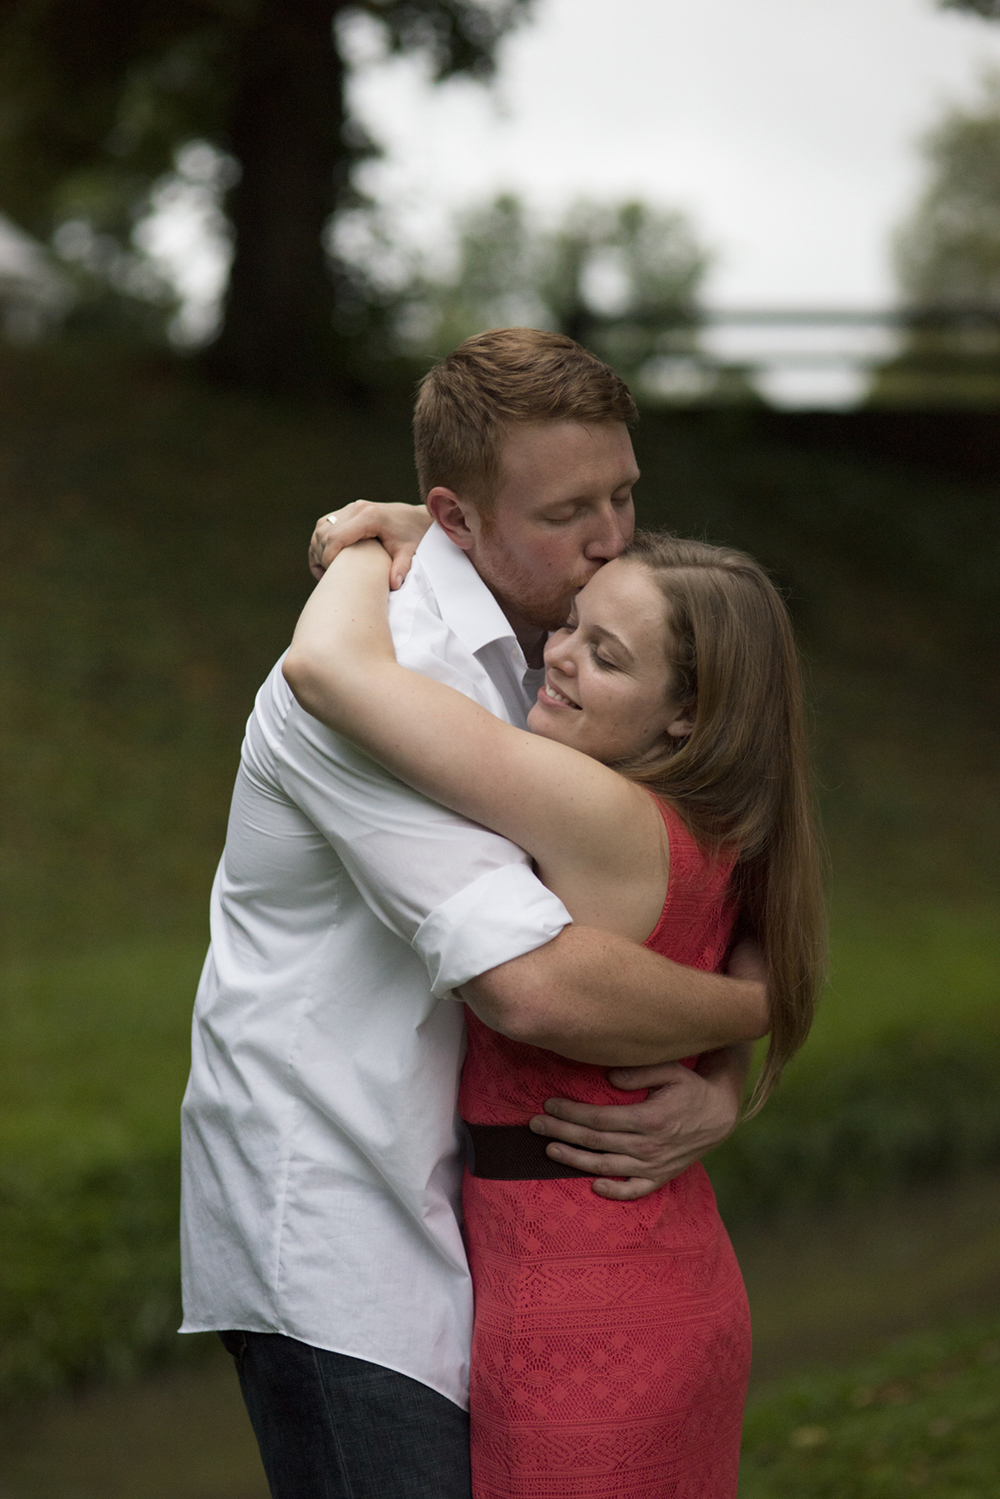 A sweet embrace during a beautiful engagement pictures in Downtown Staunton, Virginia